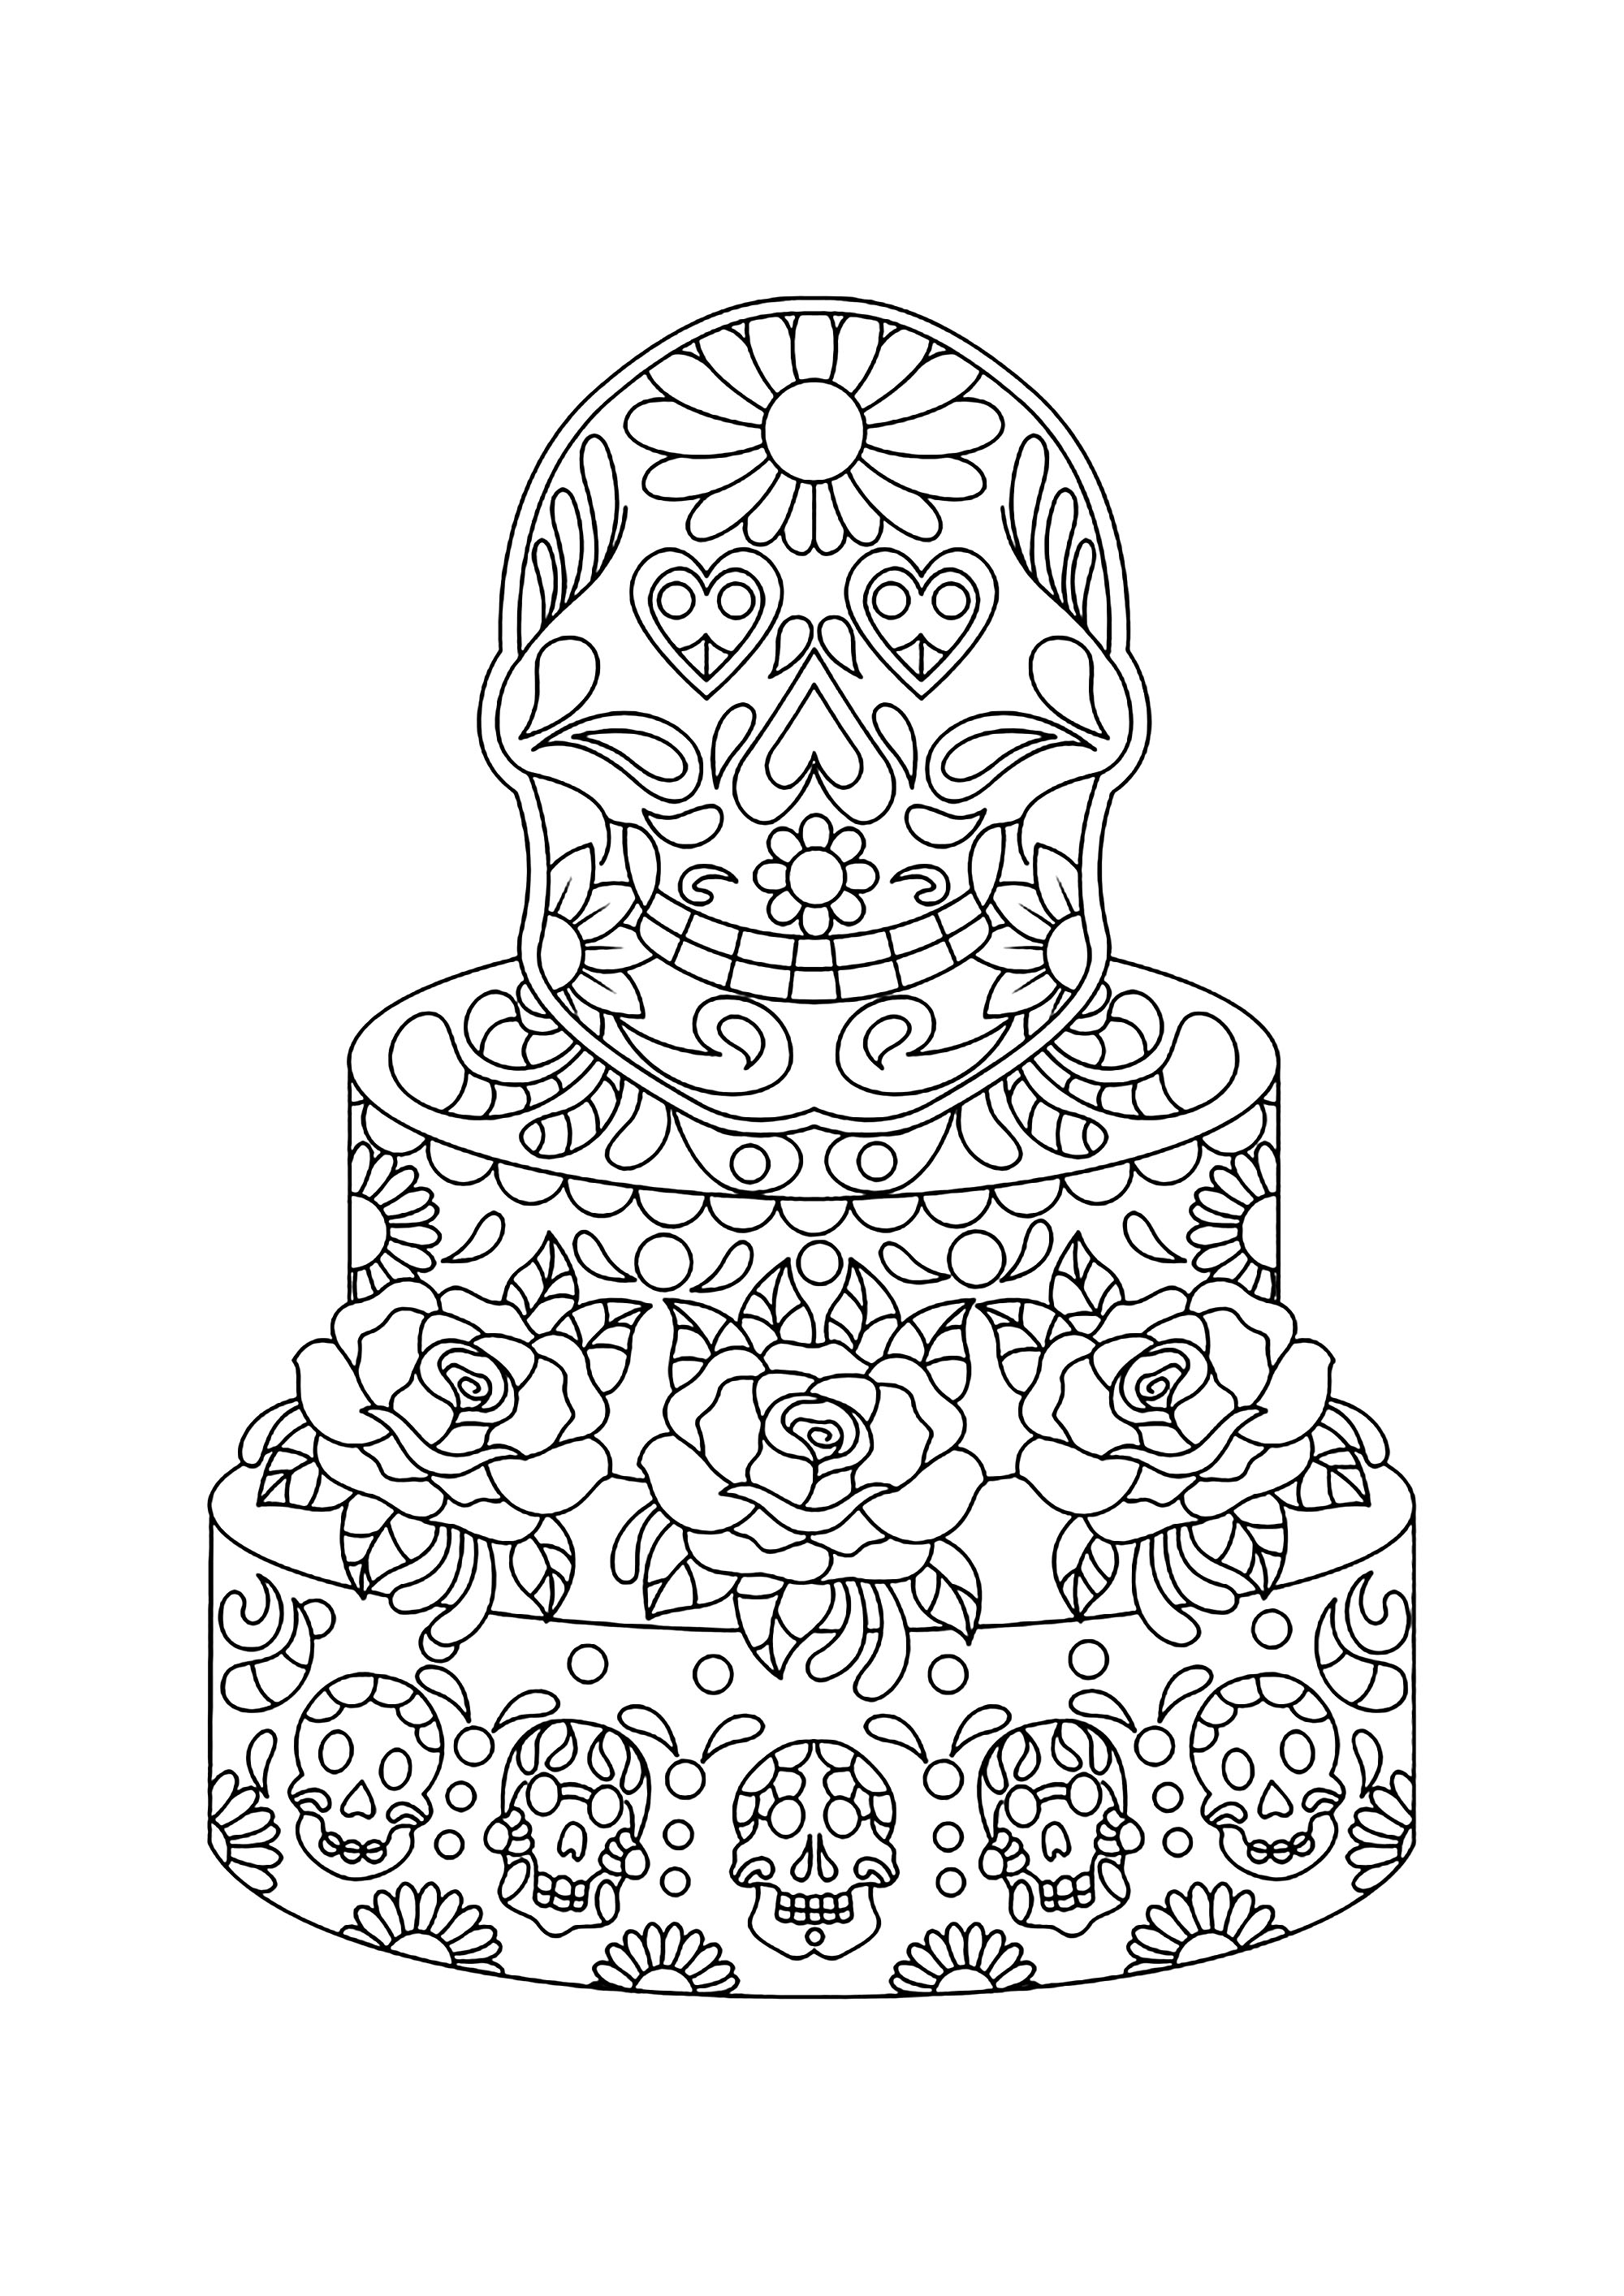 Mexican Cake Cupcakes Adult Coloring Pages